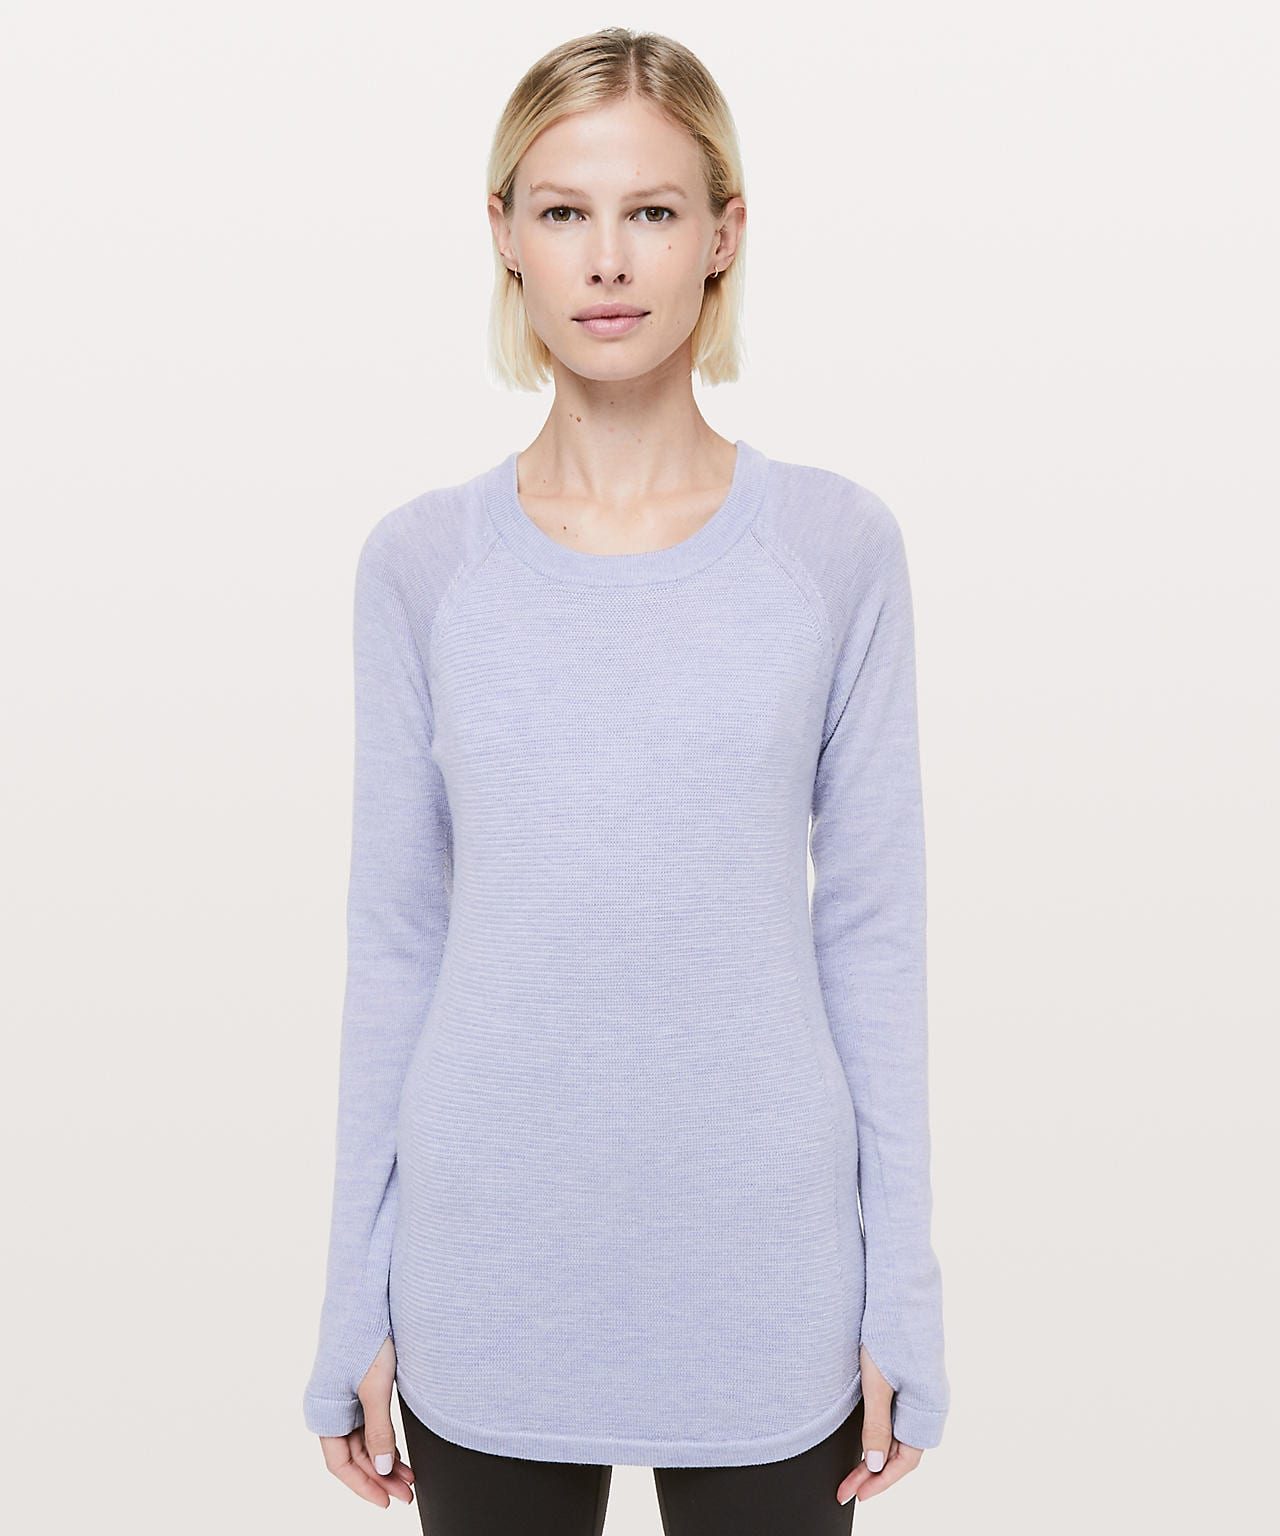 Sit In Lotus Sweater, Lululemon Holiday Product Drops